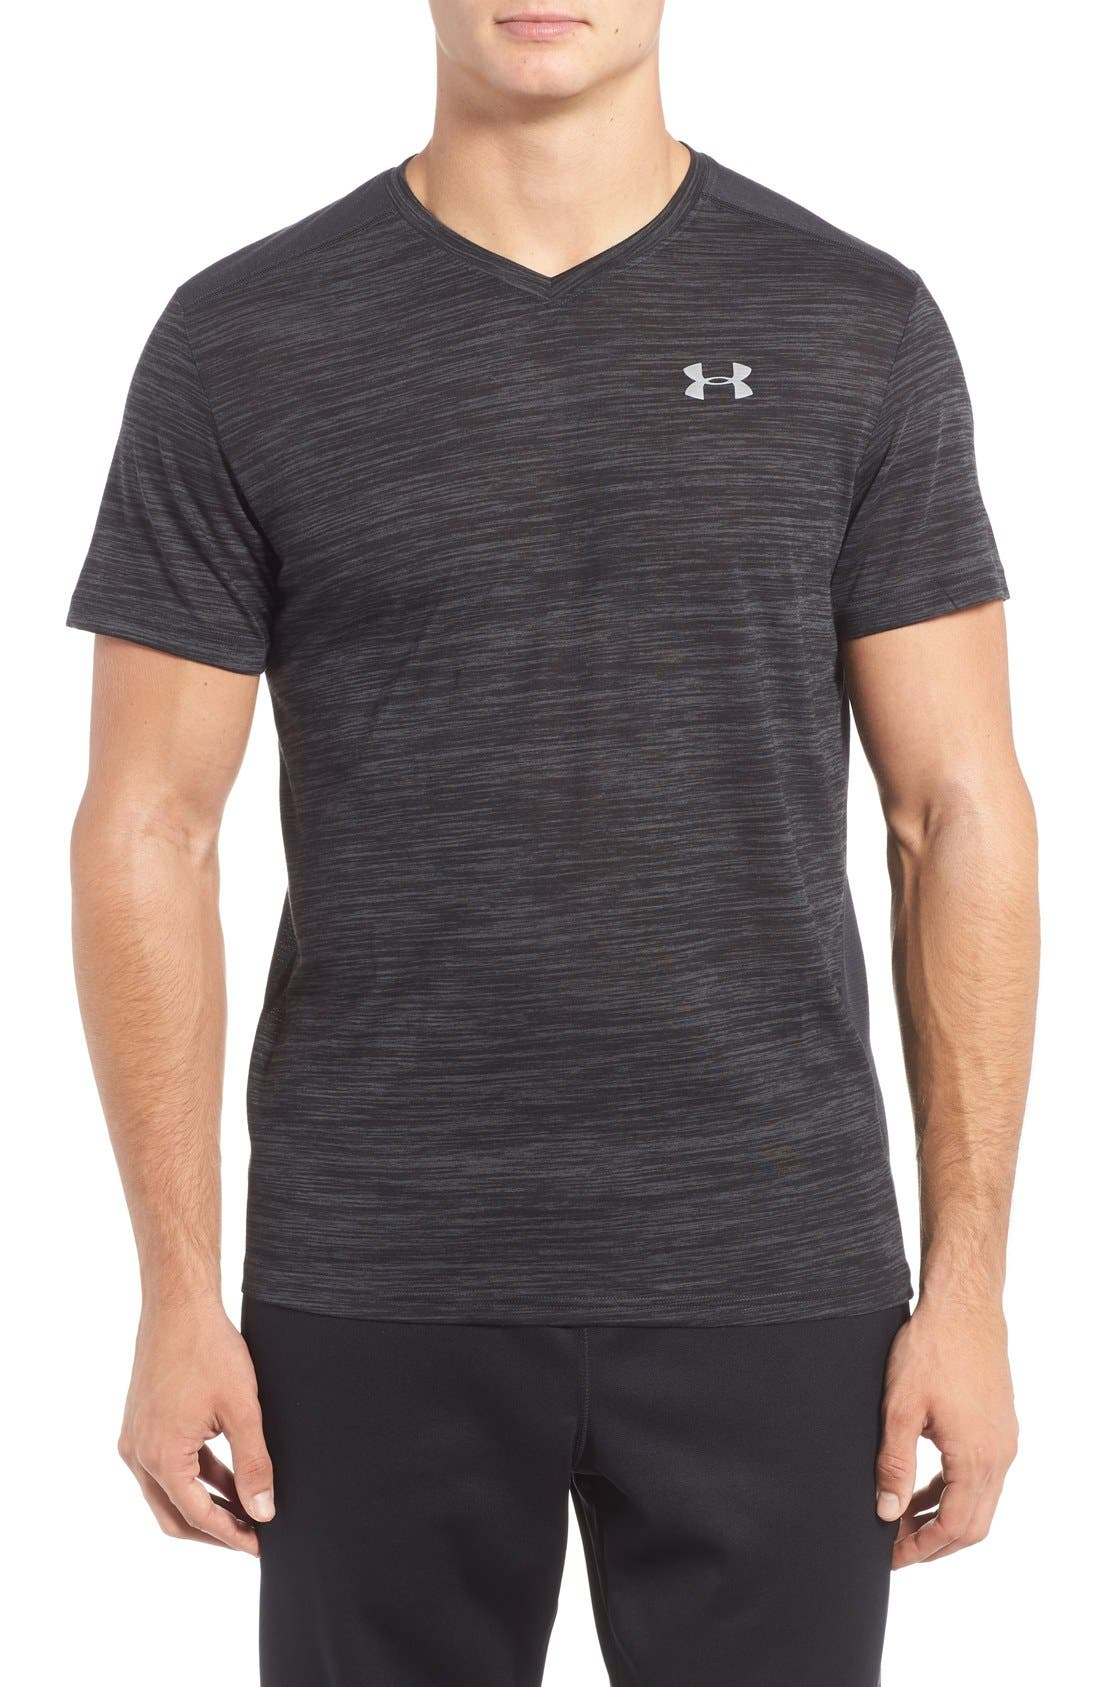 'Streaker Run' Microthread V-Neck T-Shirt,                             Main thumbnail 1, color,                             Anthracite/ Reflective Silver